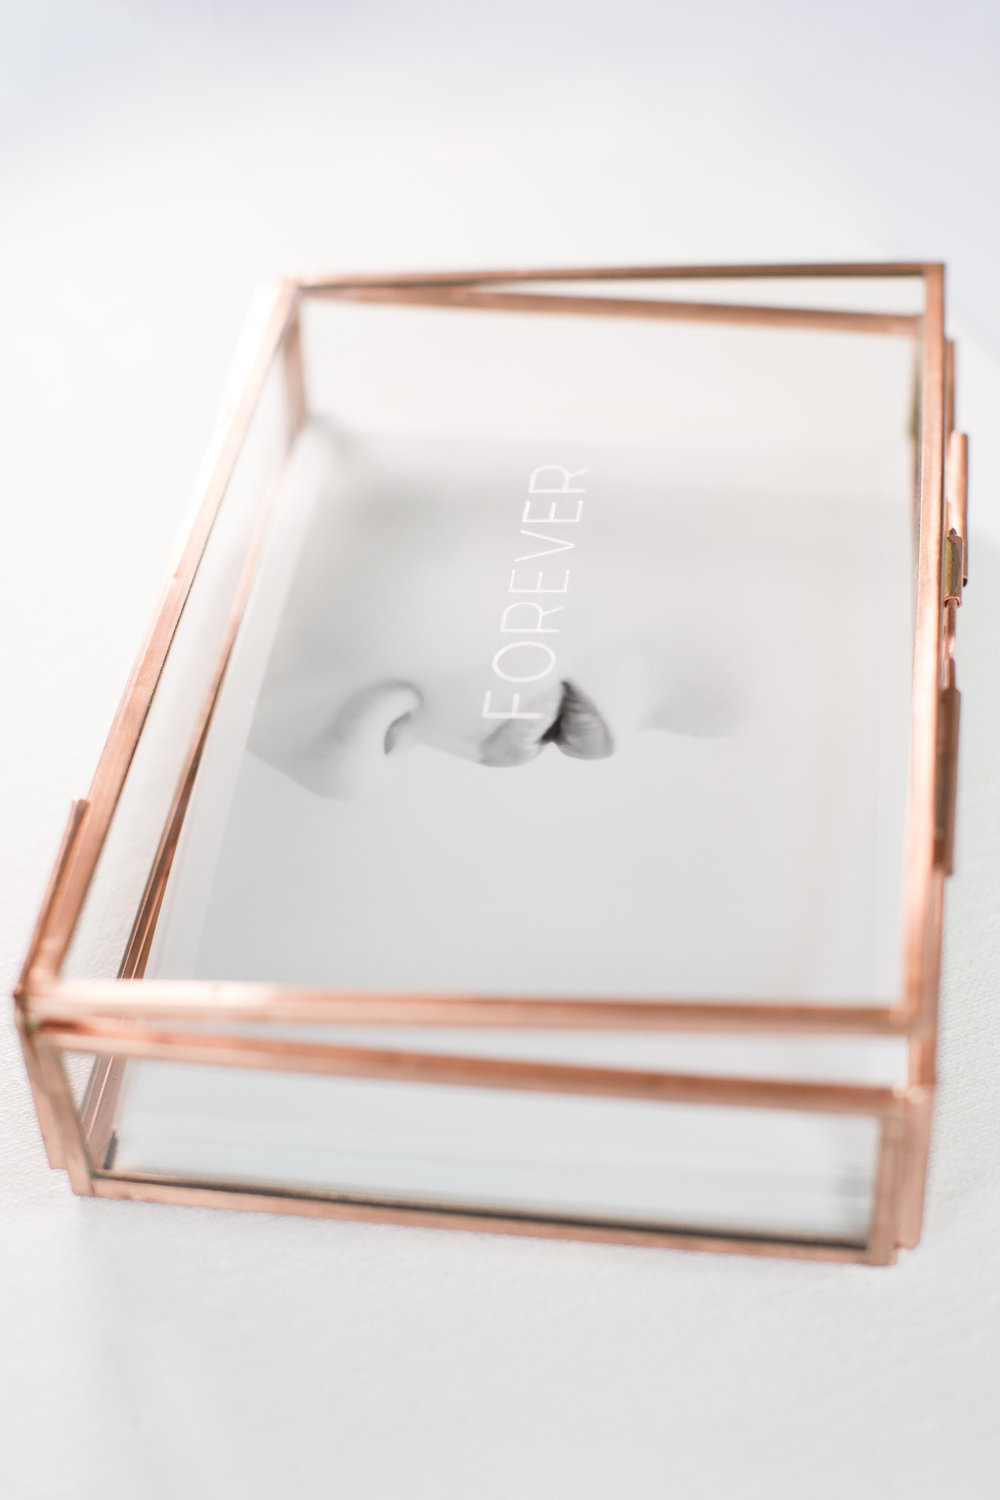 La Rousse Shoppe_rose gold box.jpg